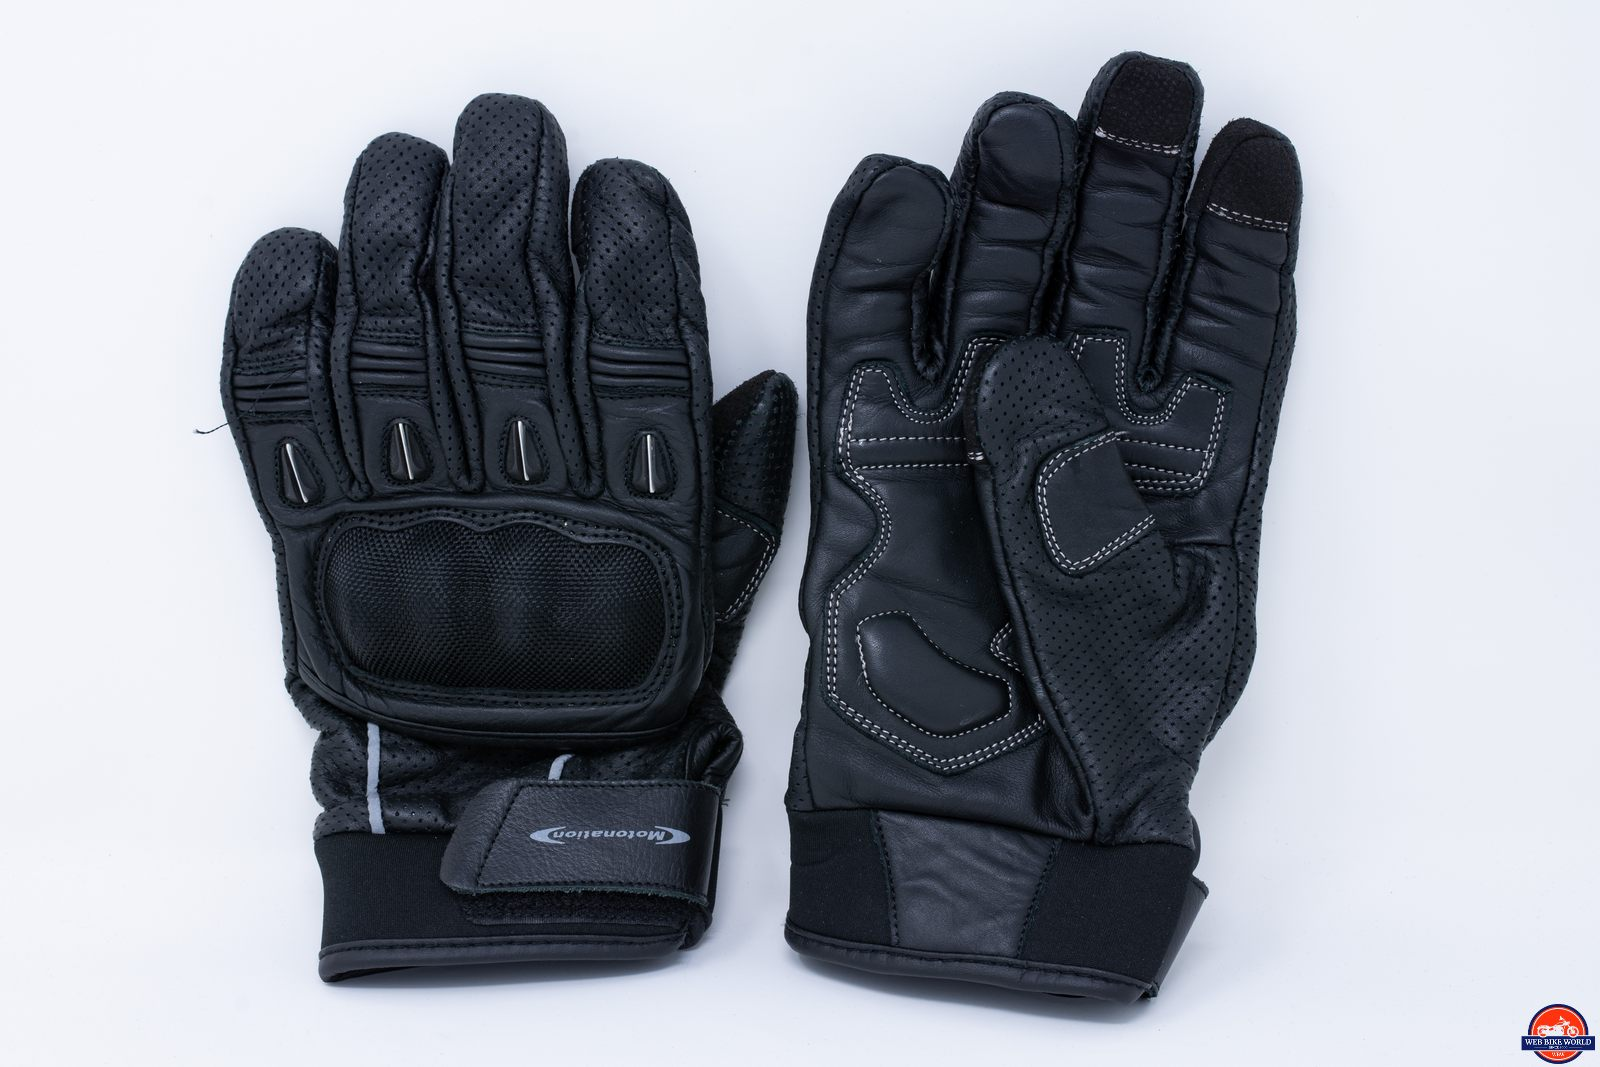 Motonation Campeon Leather Motorcycle Gloves